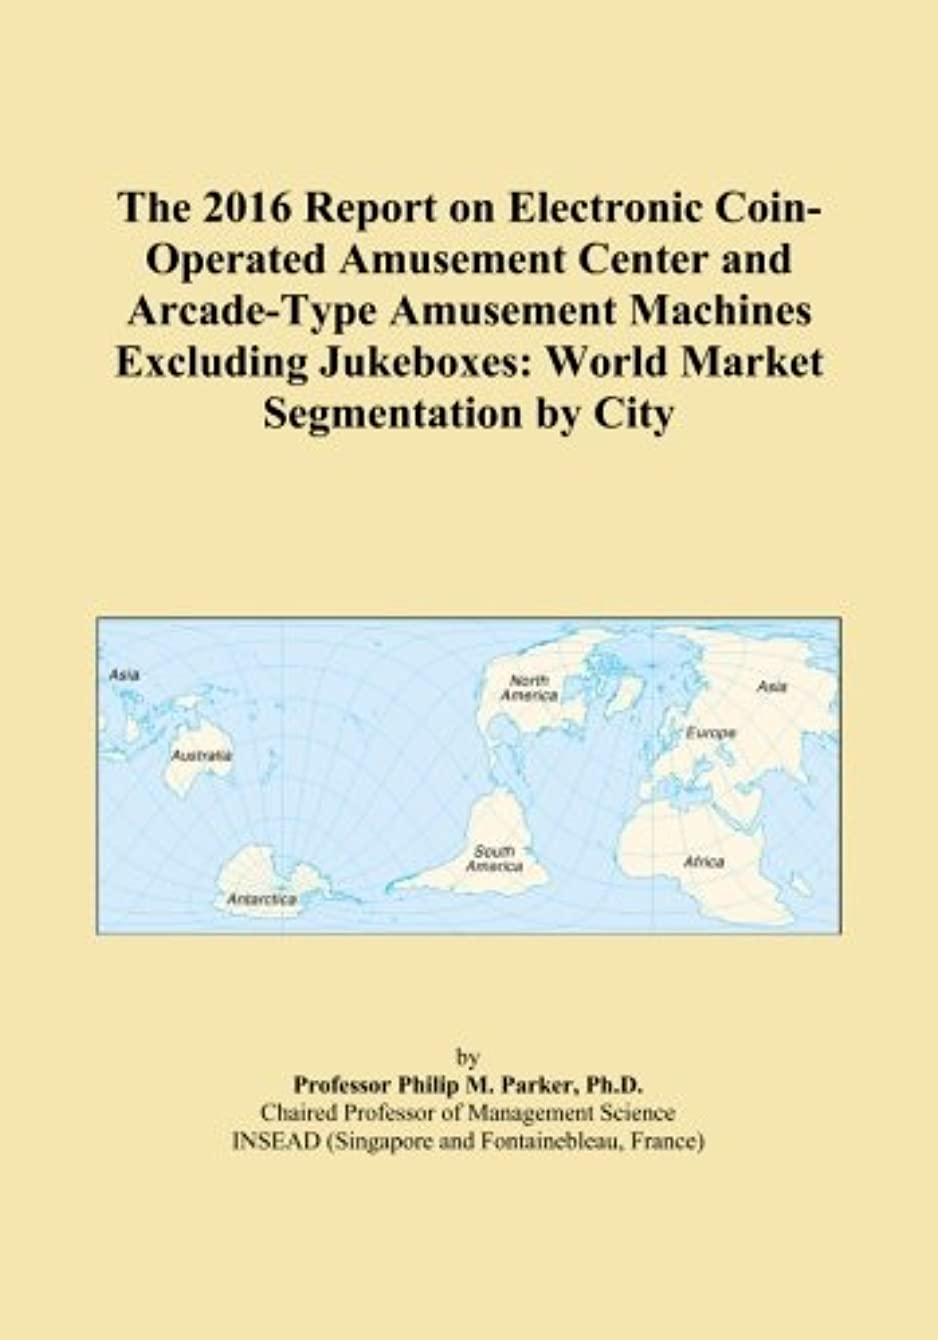 ラフレシアアルノルディ王族したいThe 2016 Report on Electronic Coin-Operated Amusement Center and Arcade-Type Amusement Machines Excluding Jukeboxes: World Market Segmentation by City